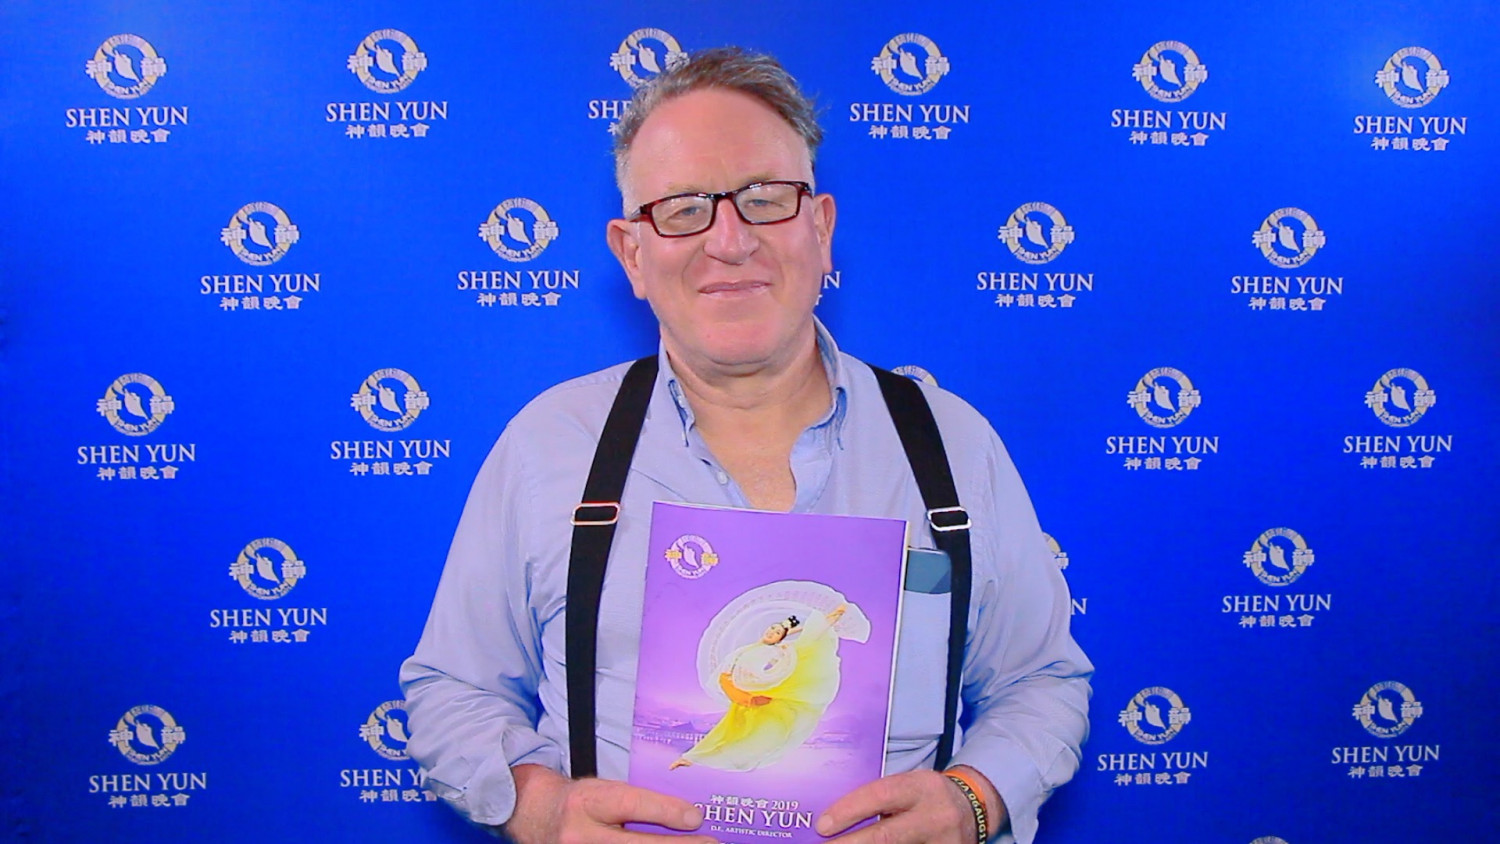 Shen Yun a Force For Light That Shines in The Darkness, Says Author